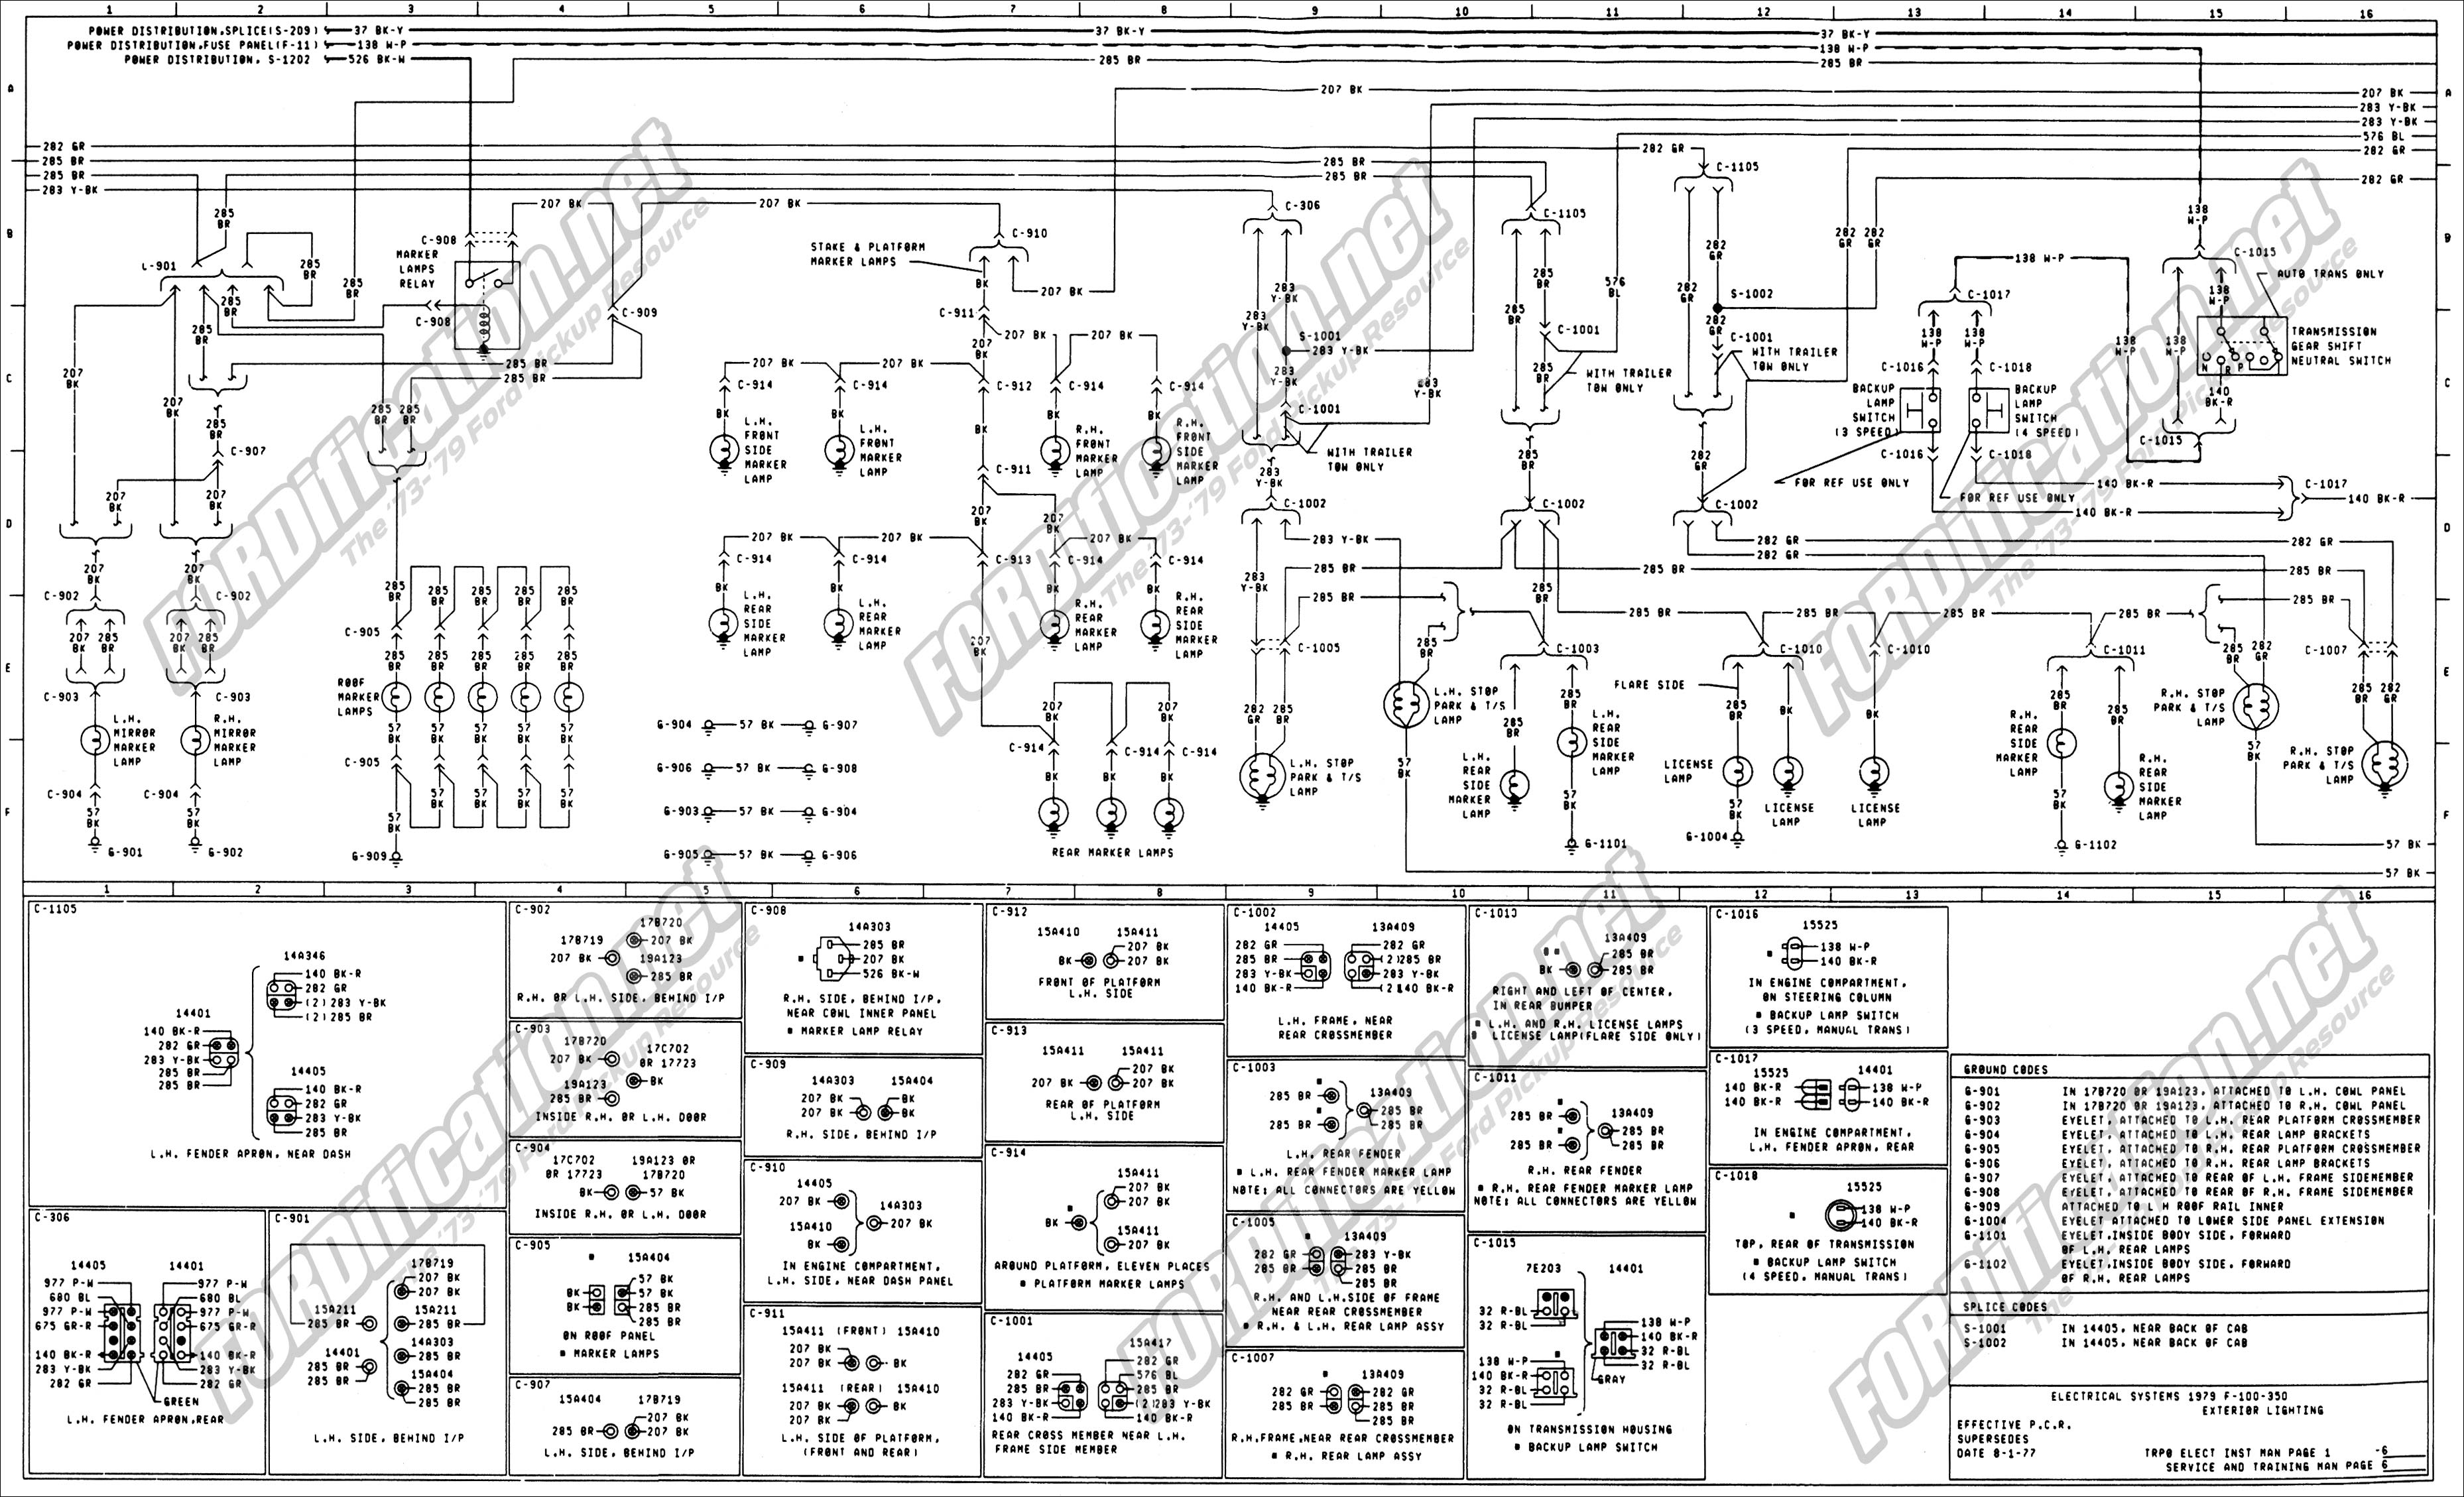 1976 Ford F 250 Wiring Diagram - Wiring Harness Ford F Wiring Schematic Fuel on ford super duty wiring schematic, ford f53 wiring schematic, ford f-350 regular cab, ford f-series dually diesel, ford escape wiring schematic, ford ranger wiring schematic, ford f-350 pickup, ford f150 wiring schematic, ford 7 pin plug schematic, ford f800 wiring schematic, 2001 ford wiring schematic, ford f550 wiring schematic, ford radio wiring schematic, ford flex wiring schematic, ford f-350 lifted trucks, ford e-450 wiring schematic, ford f250 wiring schematic, ford expedition wiring schematic, ford e-350 van wiring schematic, ford excursion wiring schematic,